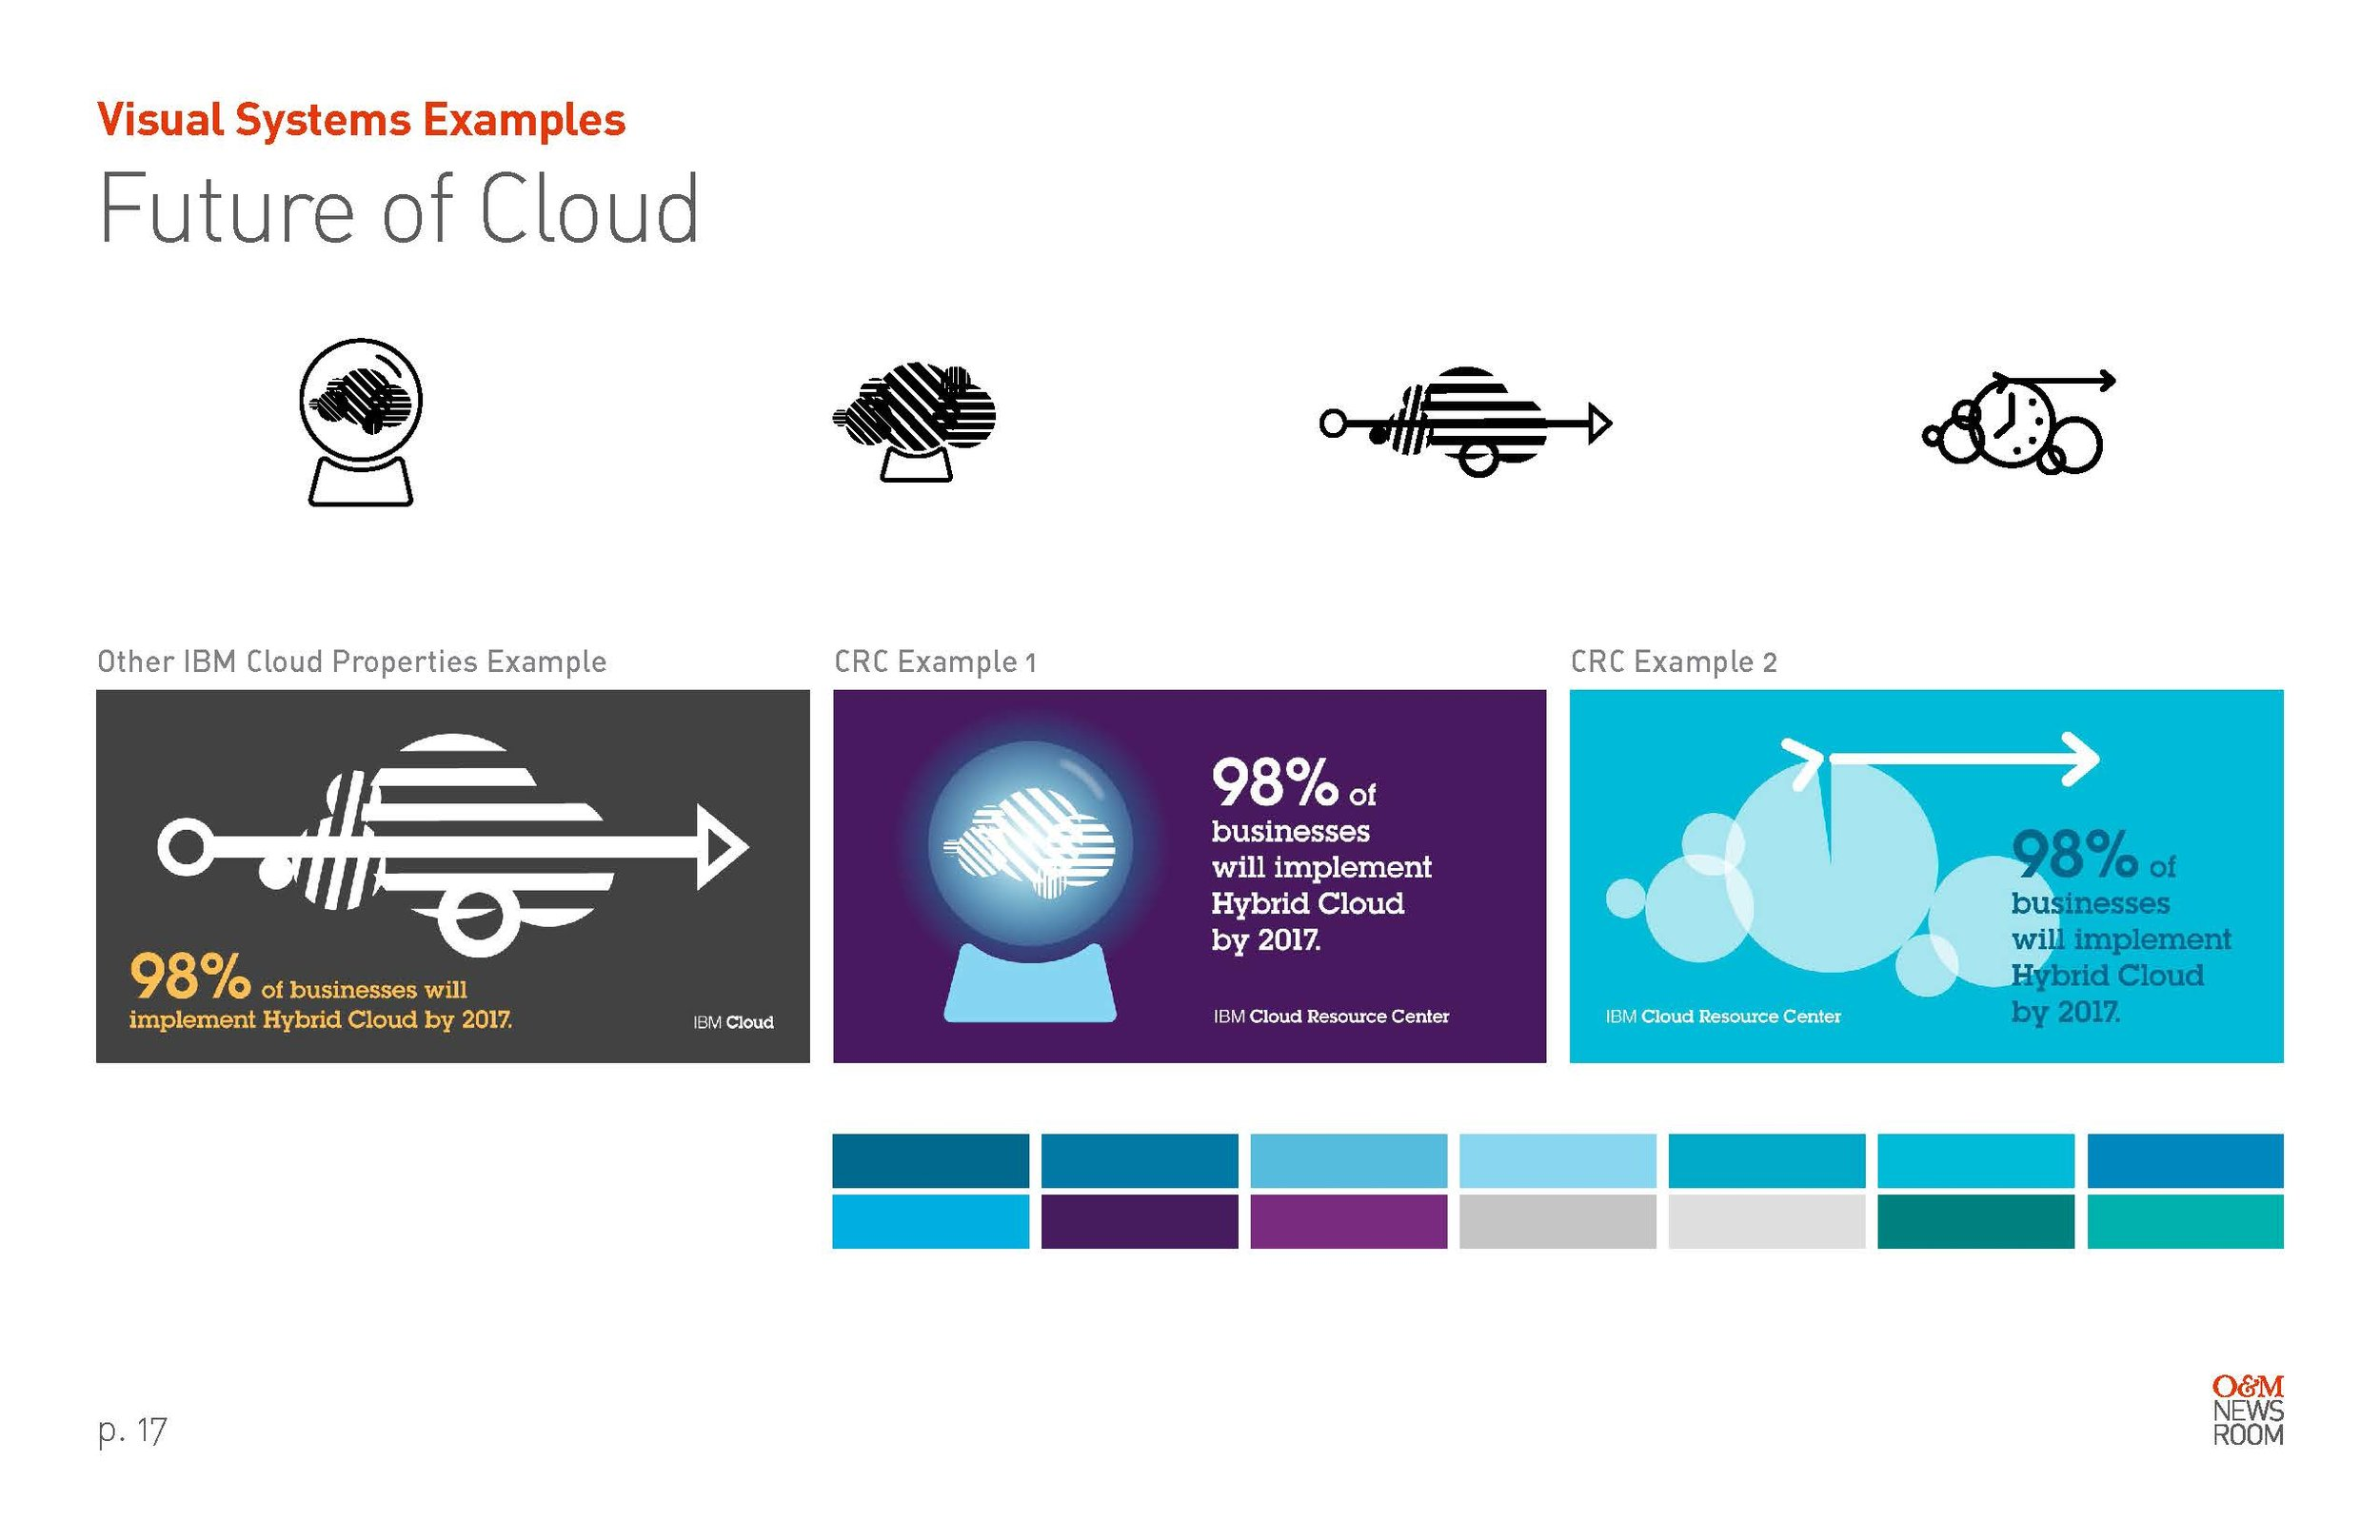 IBMNR_Cloud_Always_On_Social_Visual_Systems_Tone_of_Voice_042815_Page_17.jpg